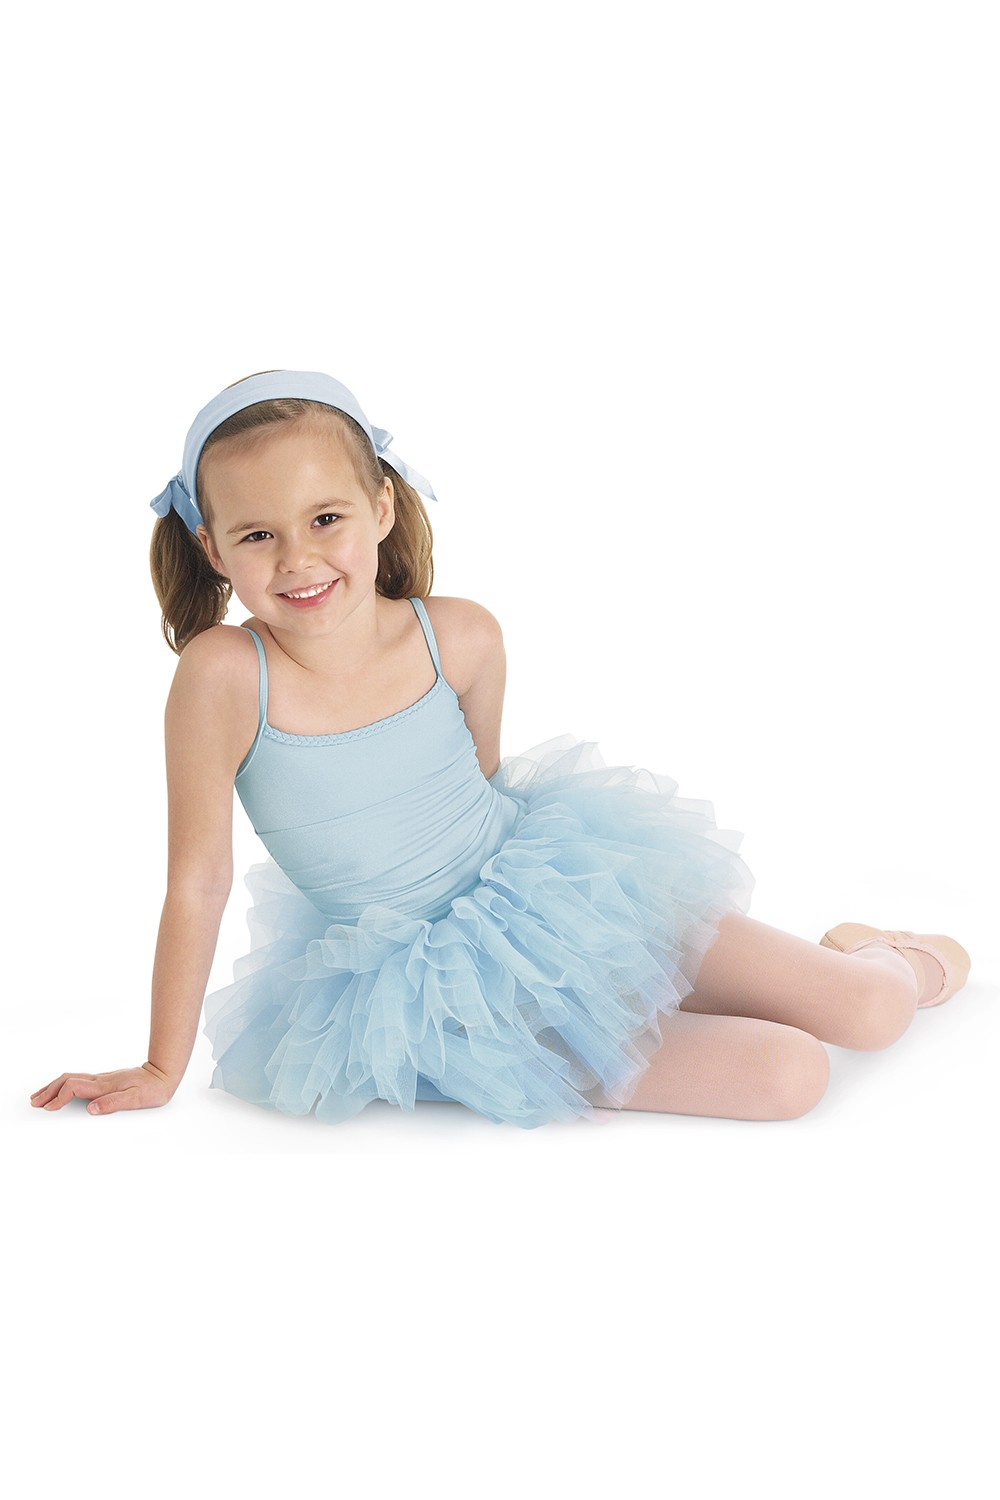 Glacier Children's Dance Leotards